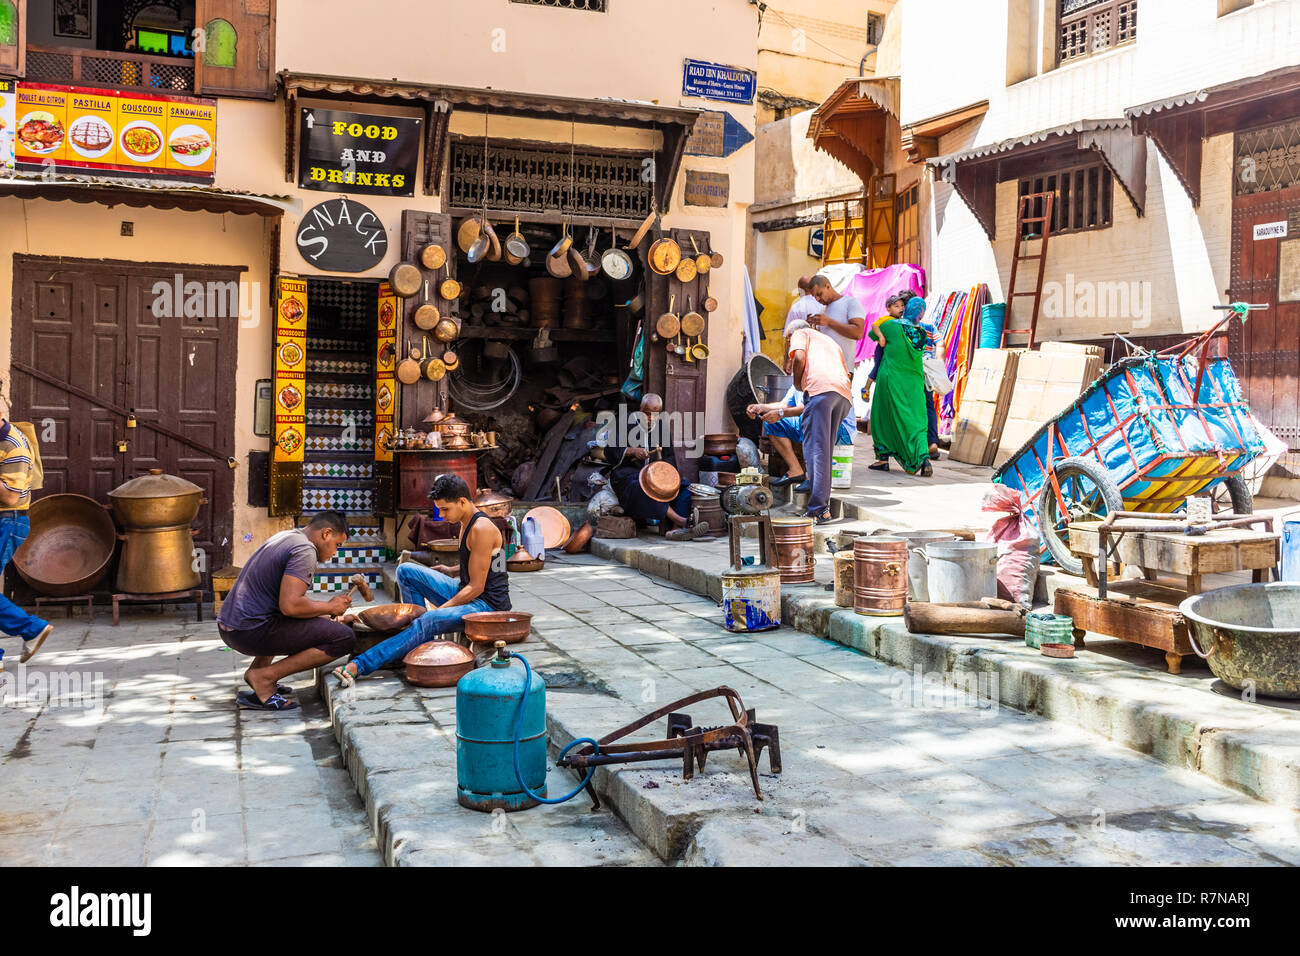 FEZ, MOROCCO, 15 AUGUST 2018: People in their traditional activity of crafting with copper in the medina - Stock Image